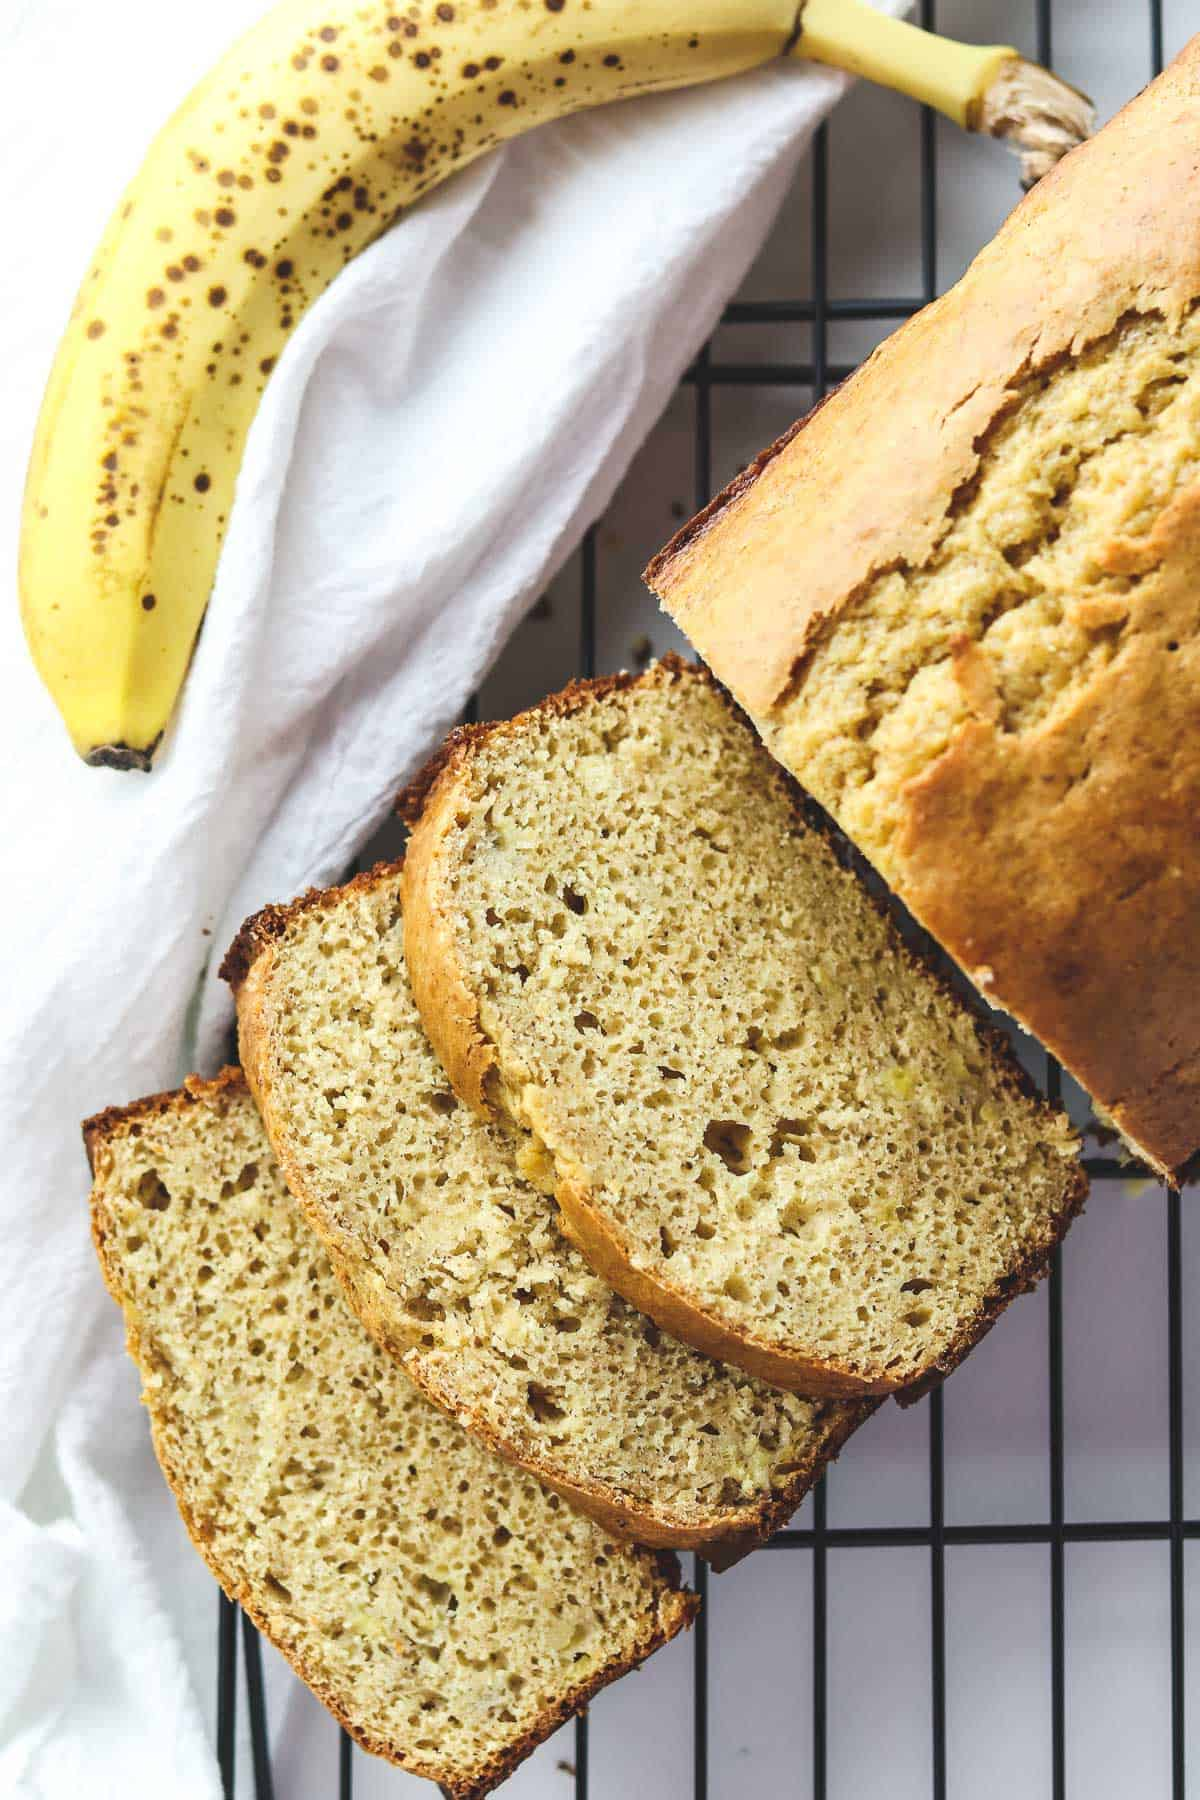 low calorie banana bread cut into slices on a coolign rack